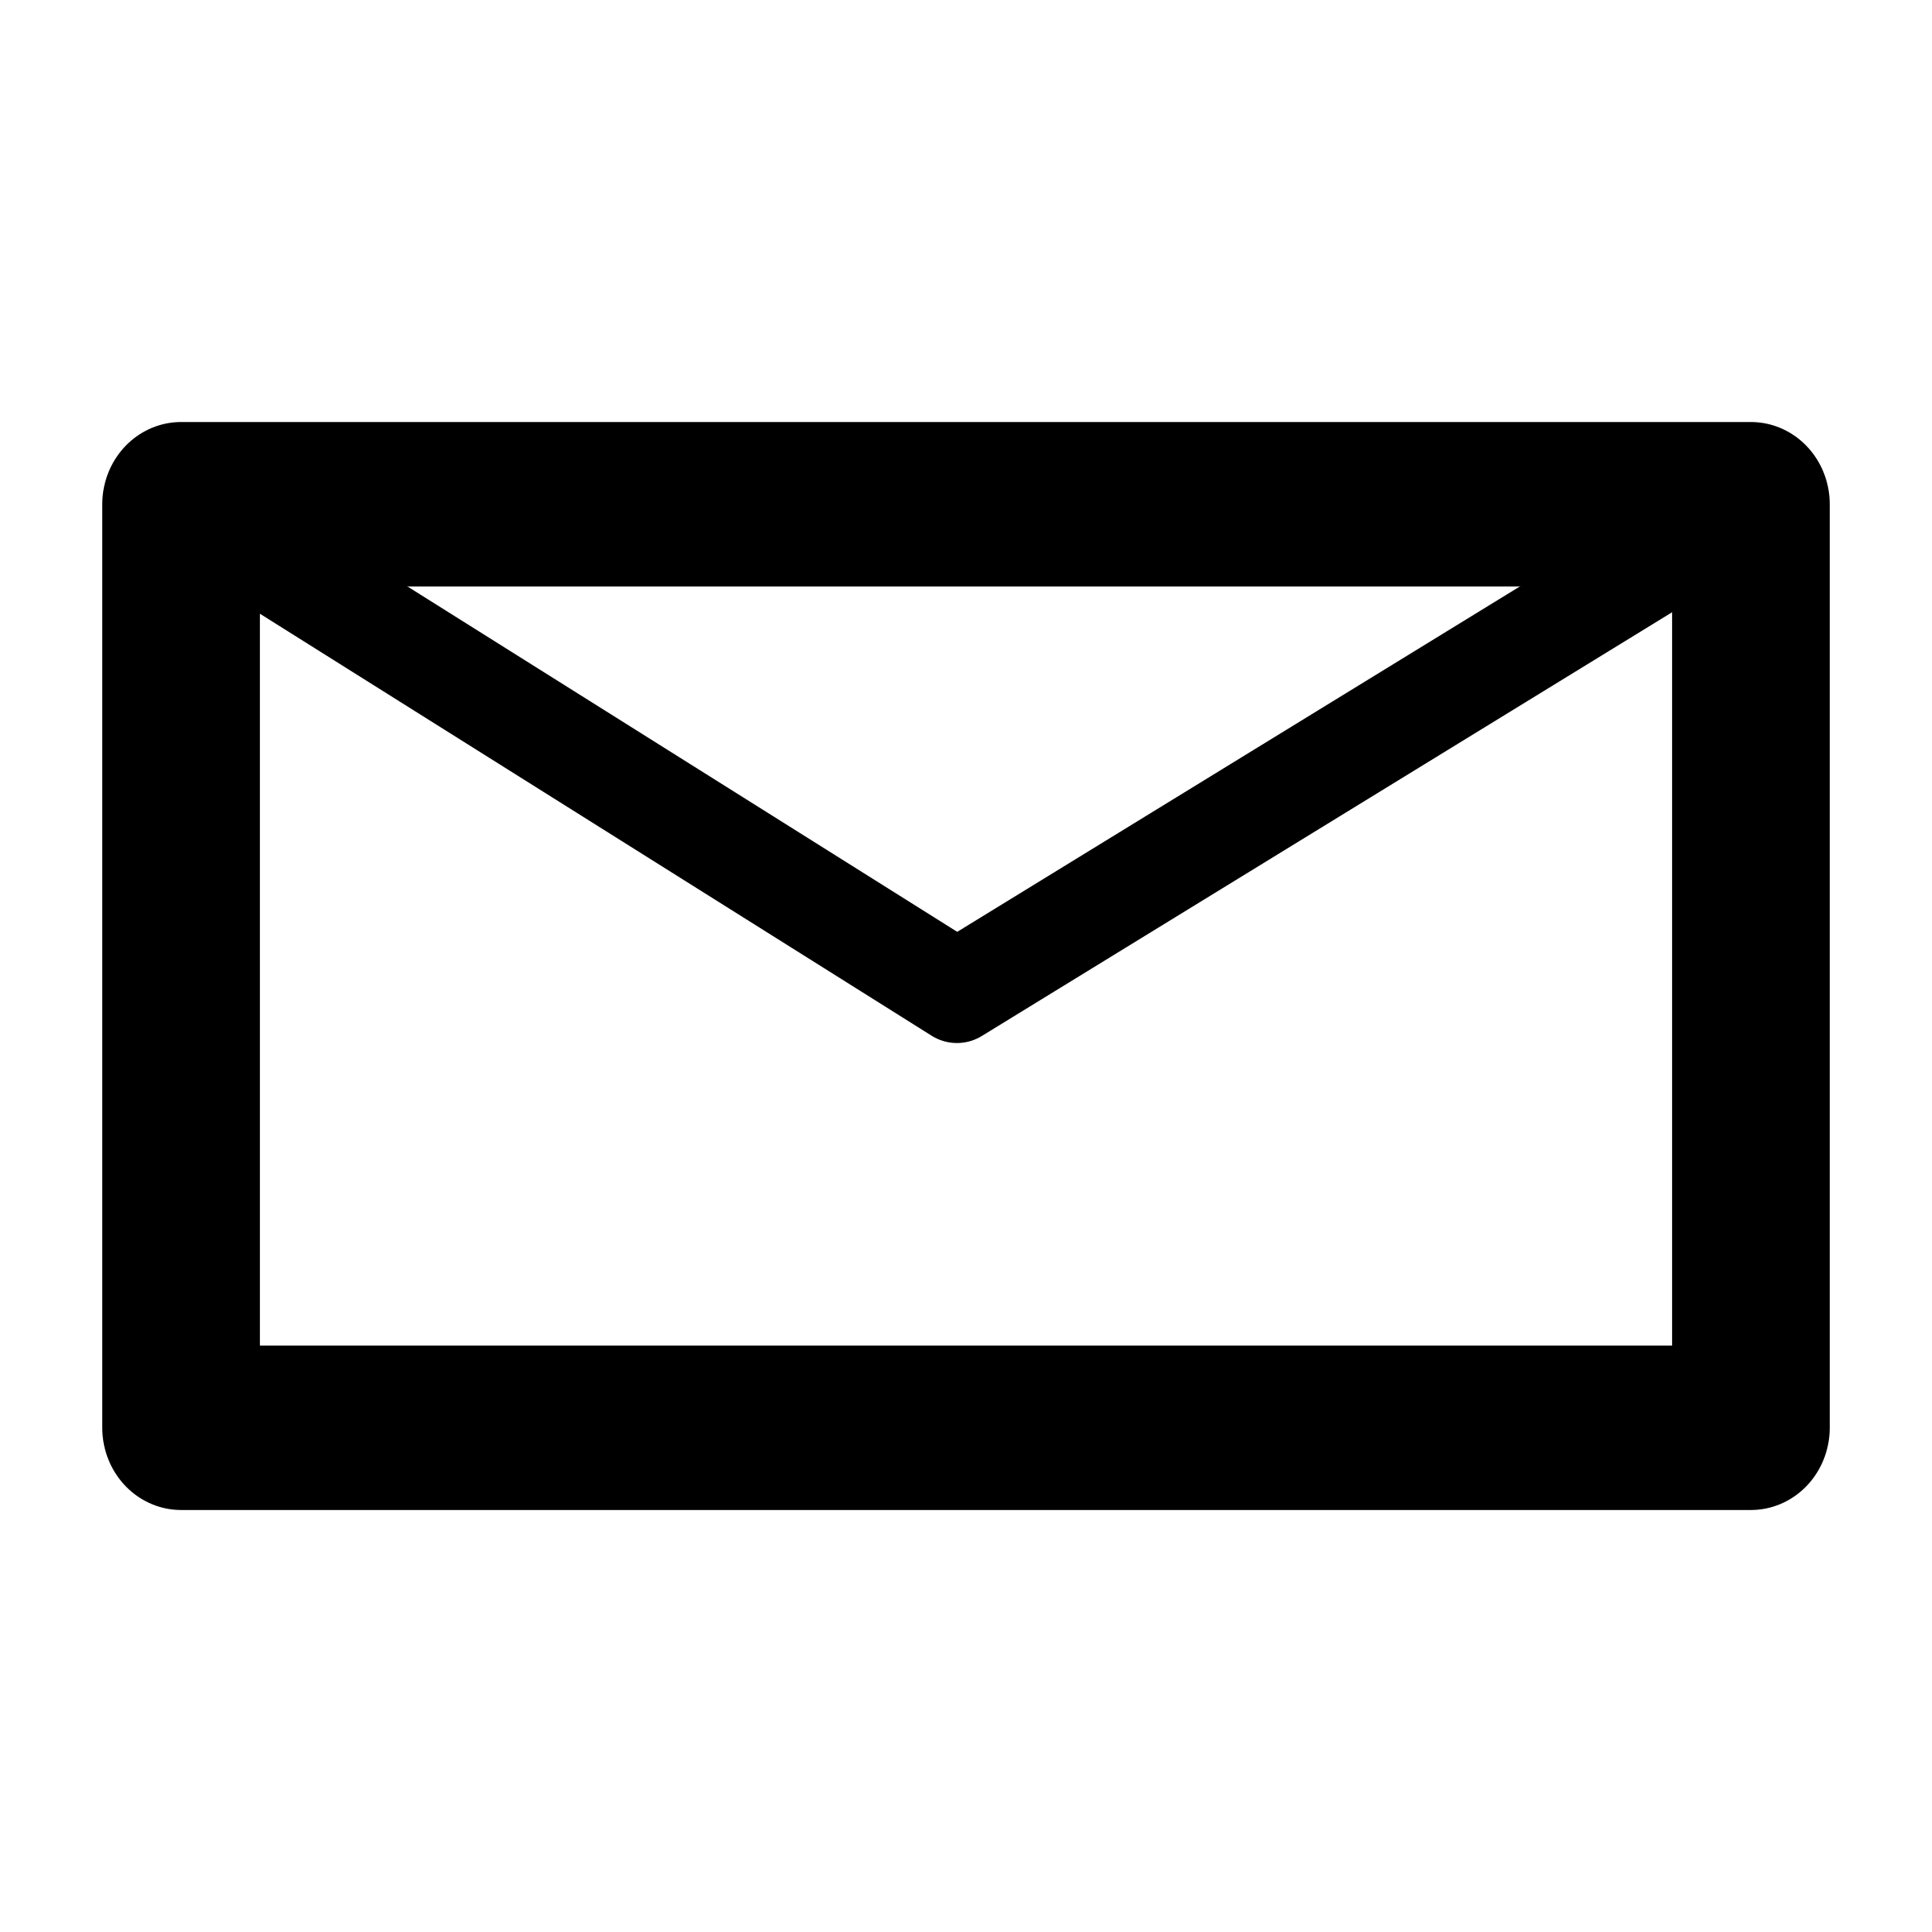 Email clipart. Black and white letters